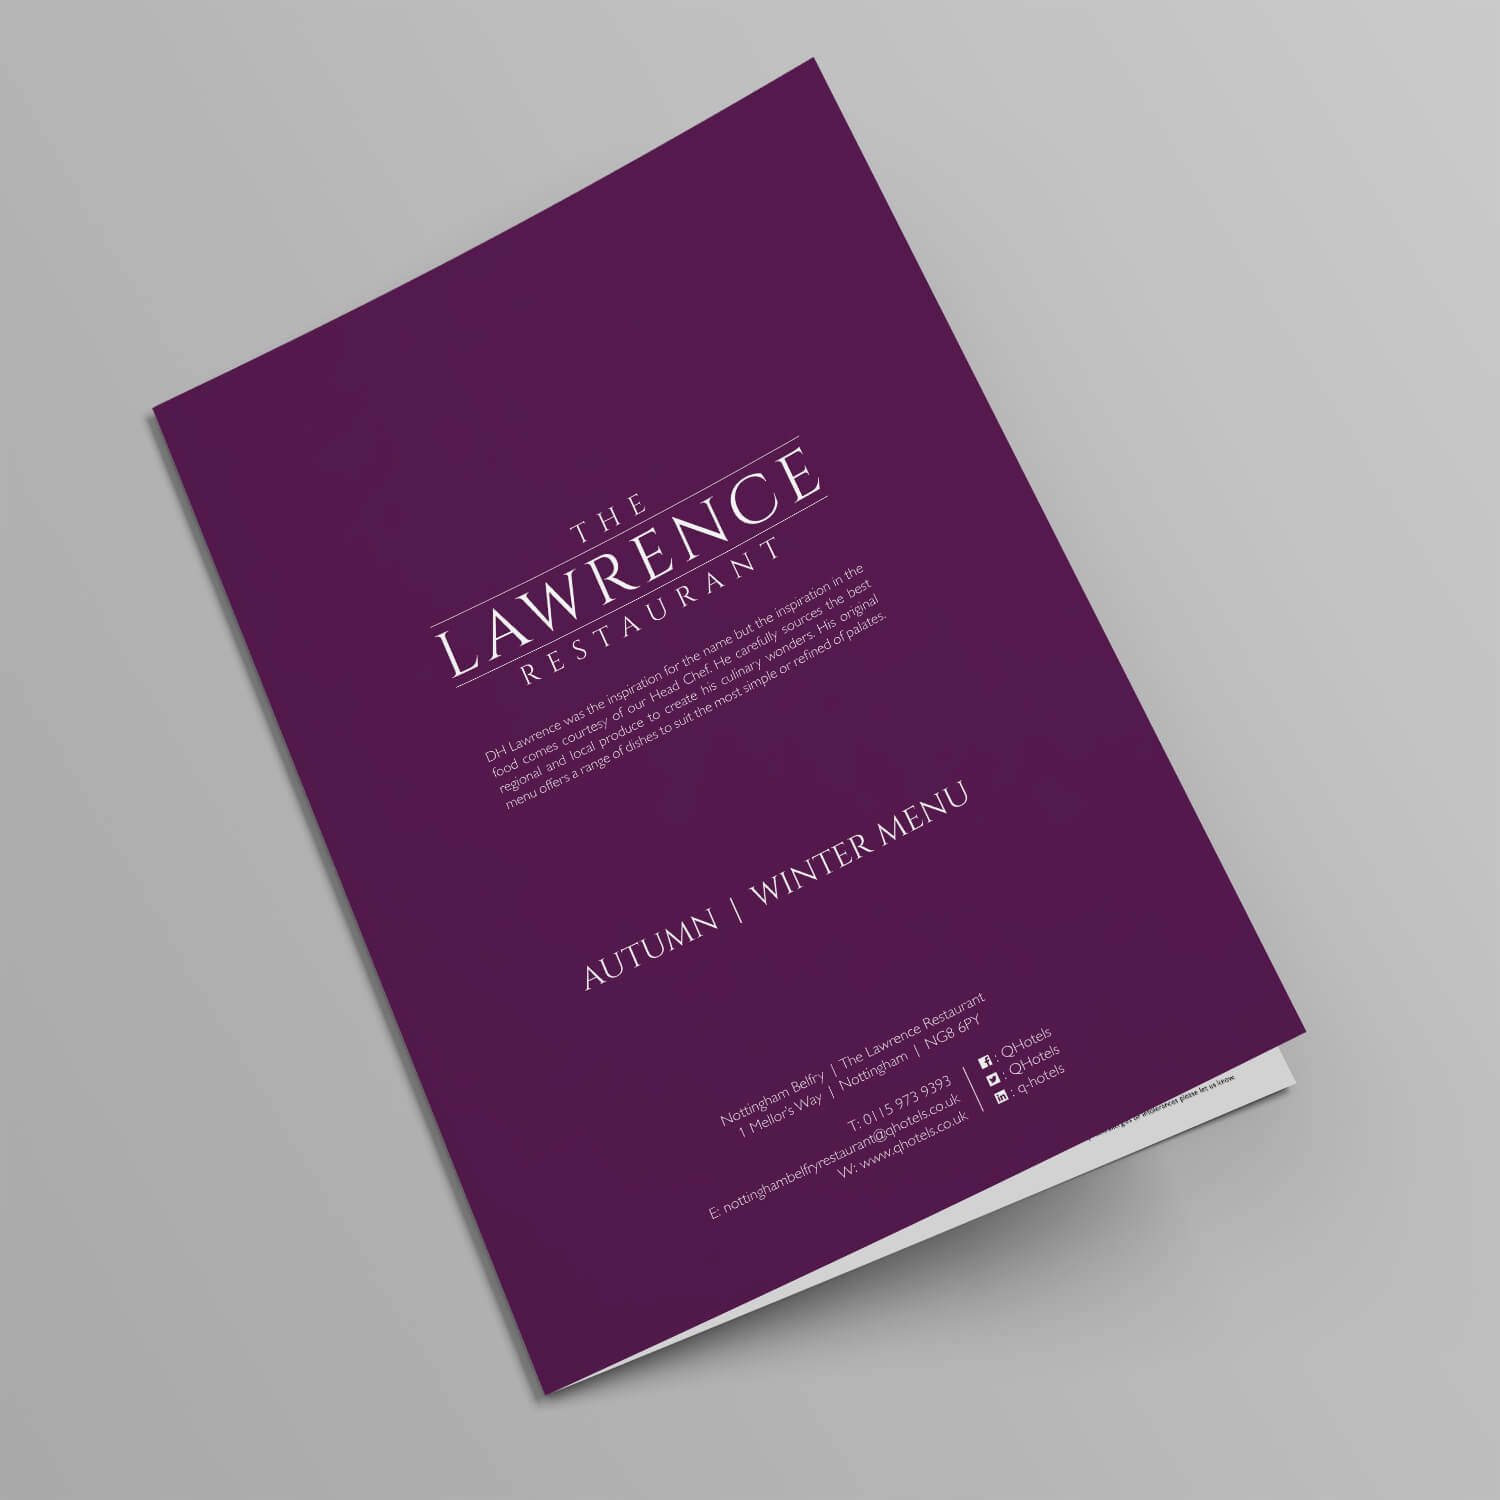 The Lawrence Restaurant 1